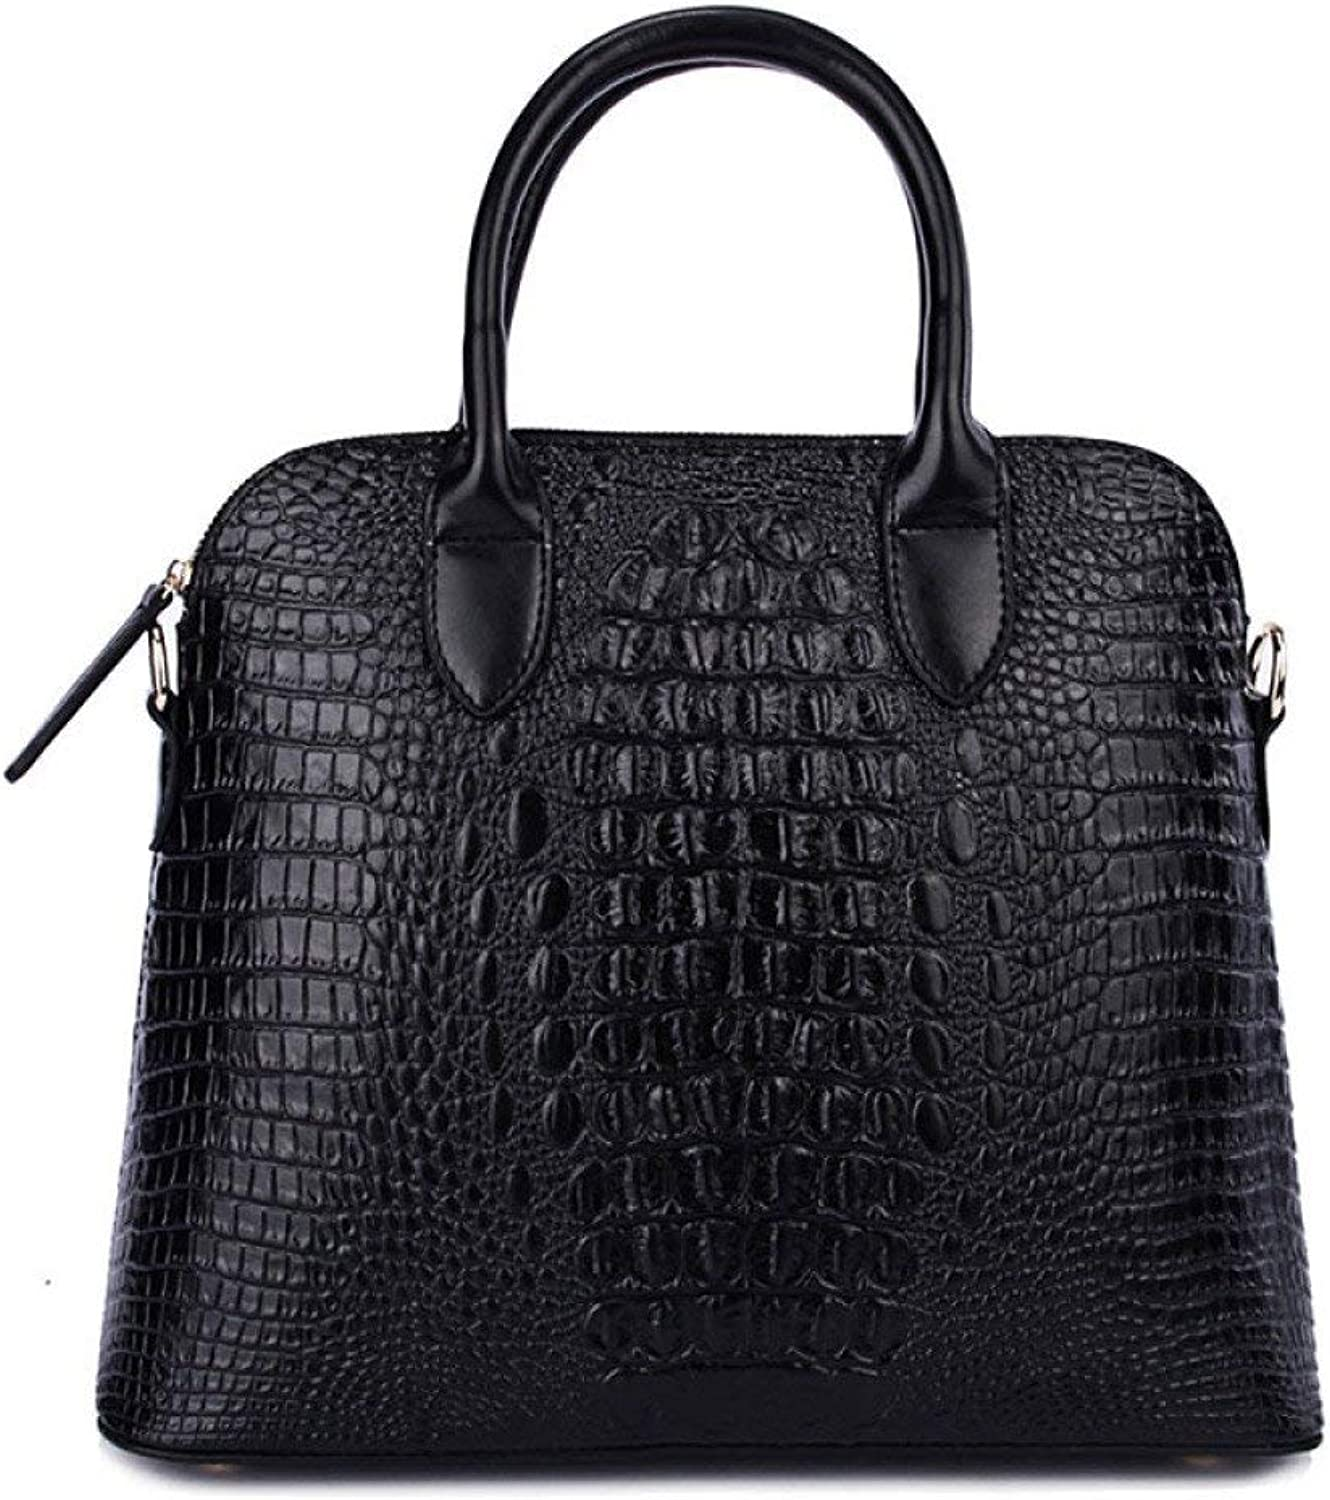 Huasen Evening Bag Shoulder Bag Long Strap Handbag Simple Crocodile Pattern Handbag Shell Bag Leather Handbag Party Handbag (color   Black, Size   One Size)